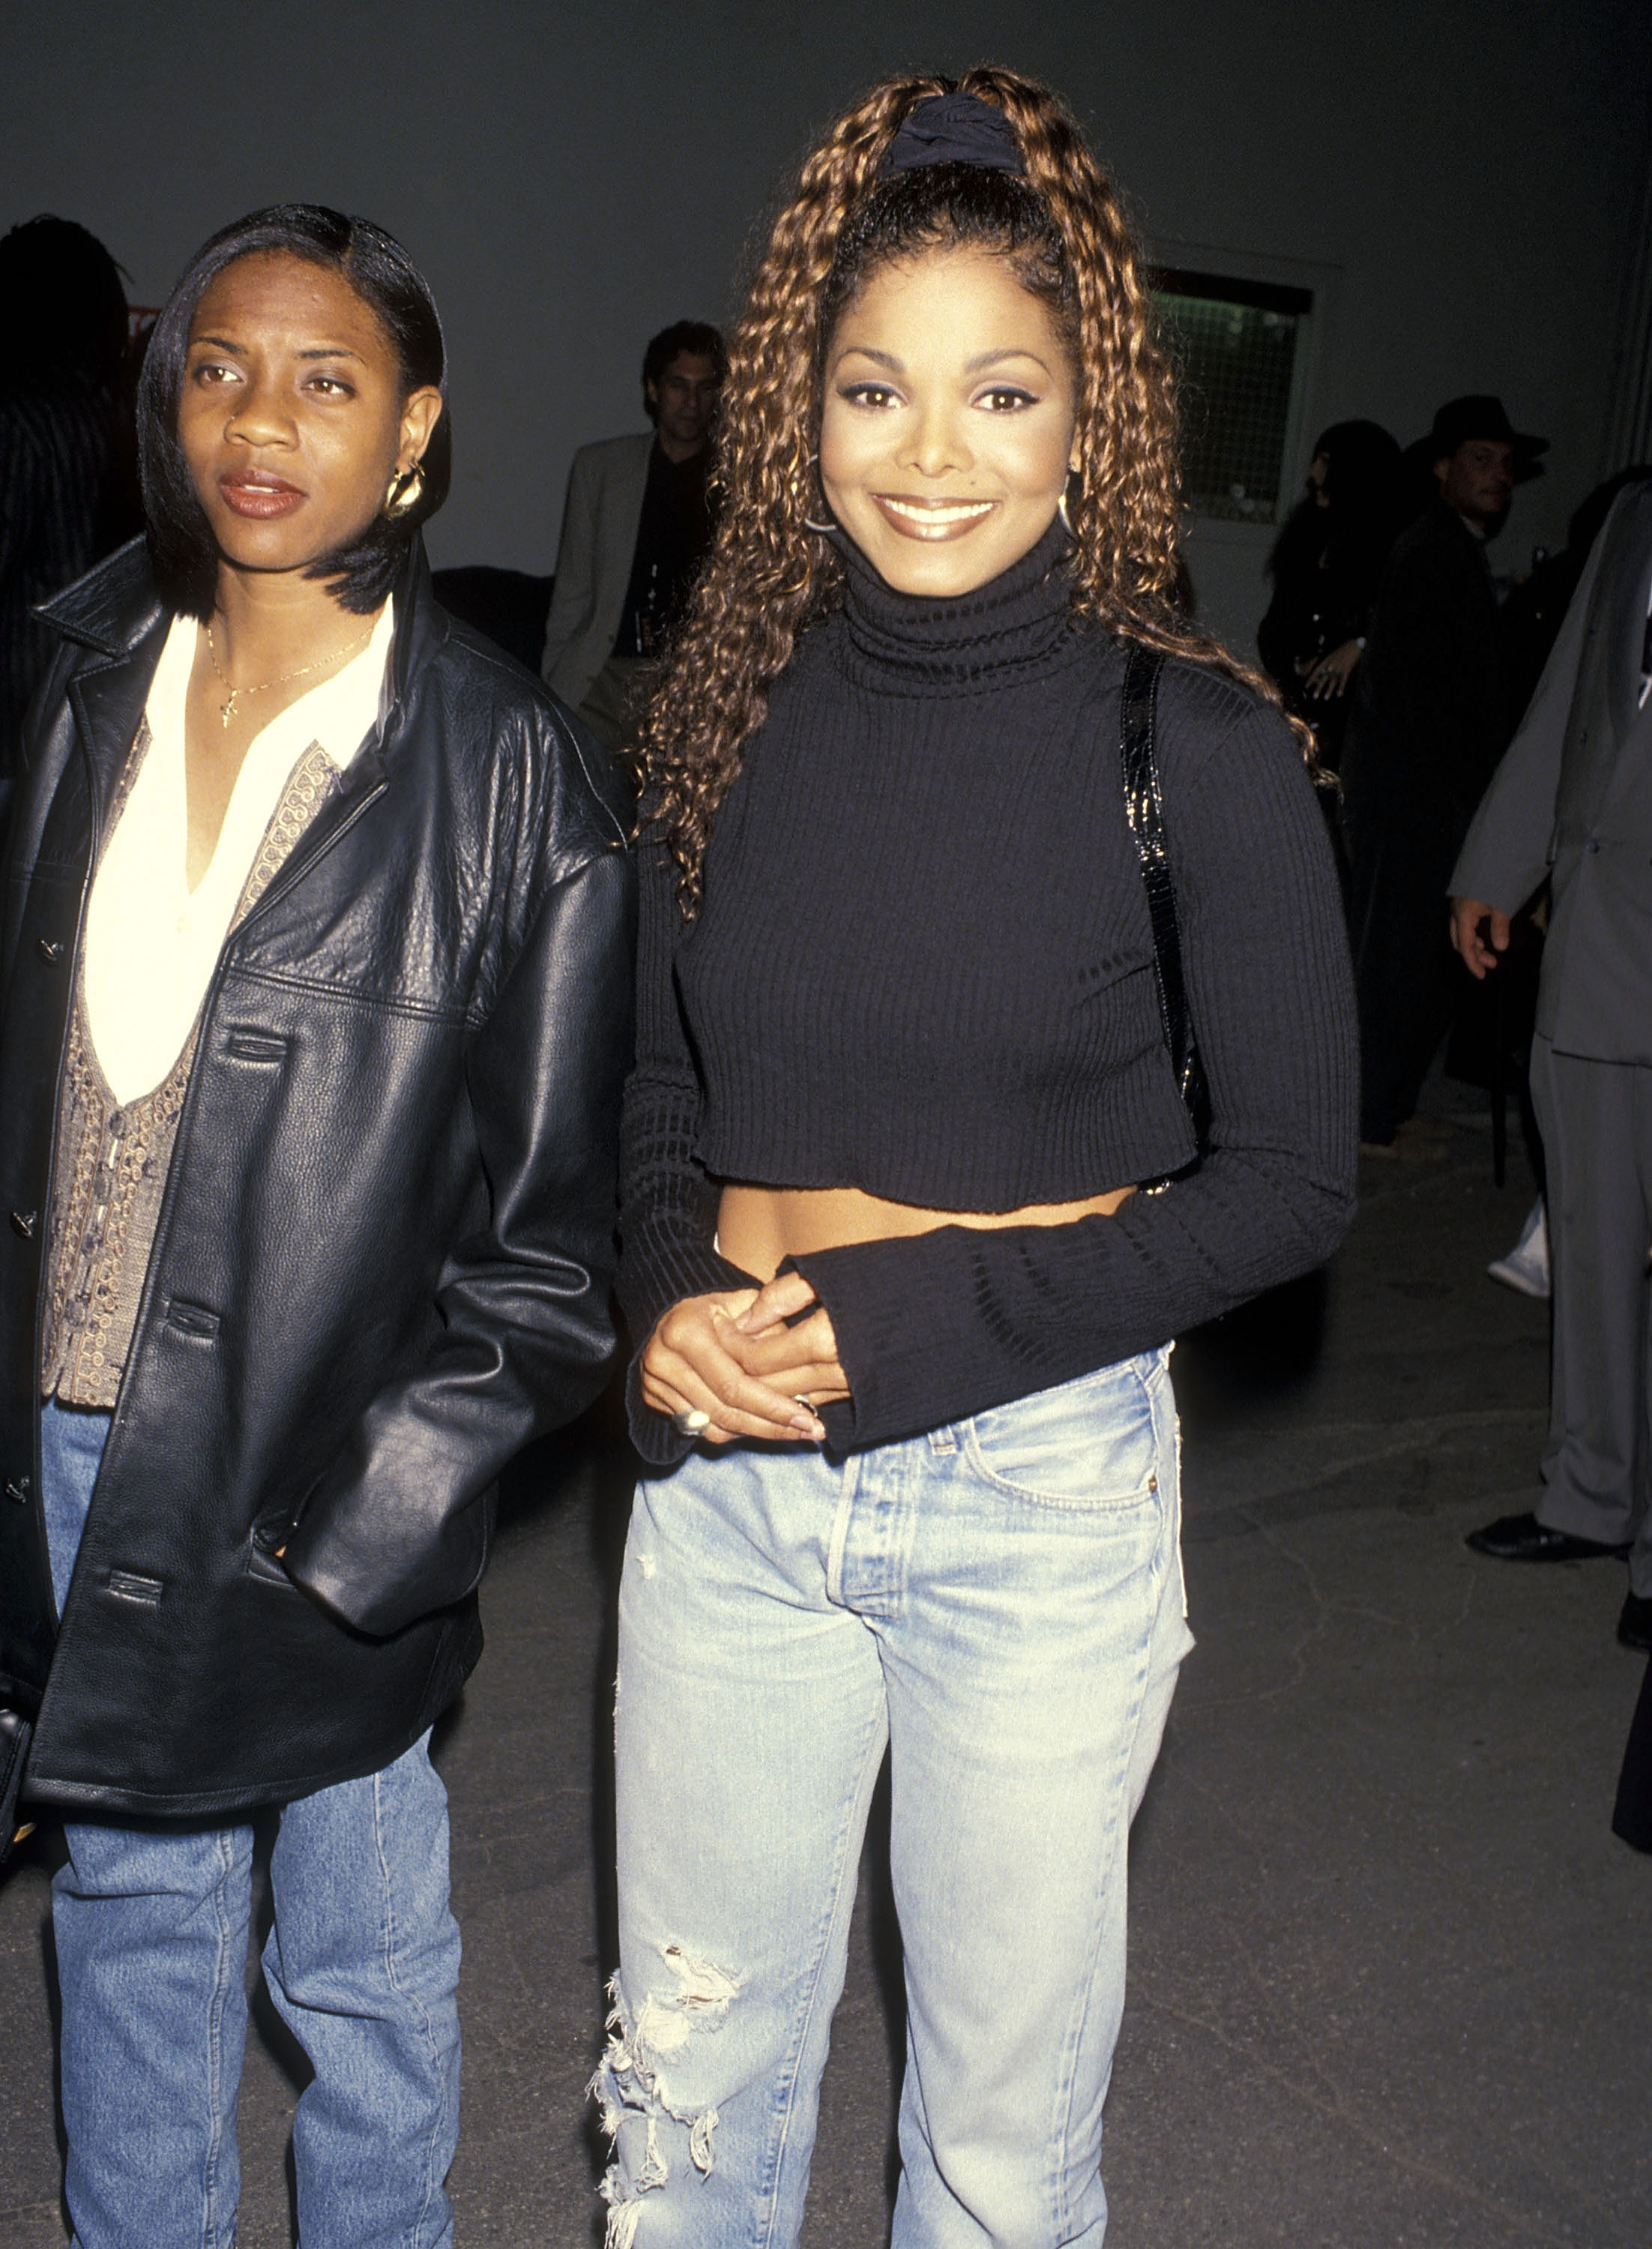 janet jackson in the street smiling at the camera in a turtleneck